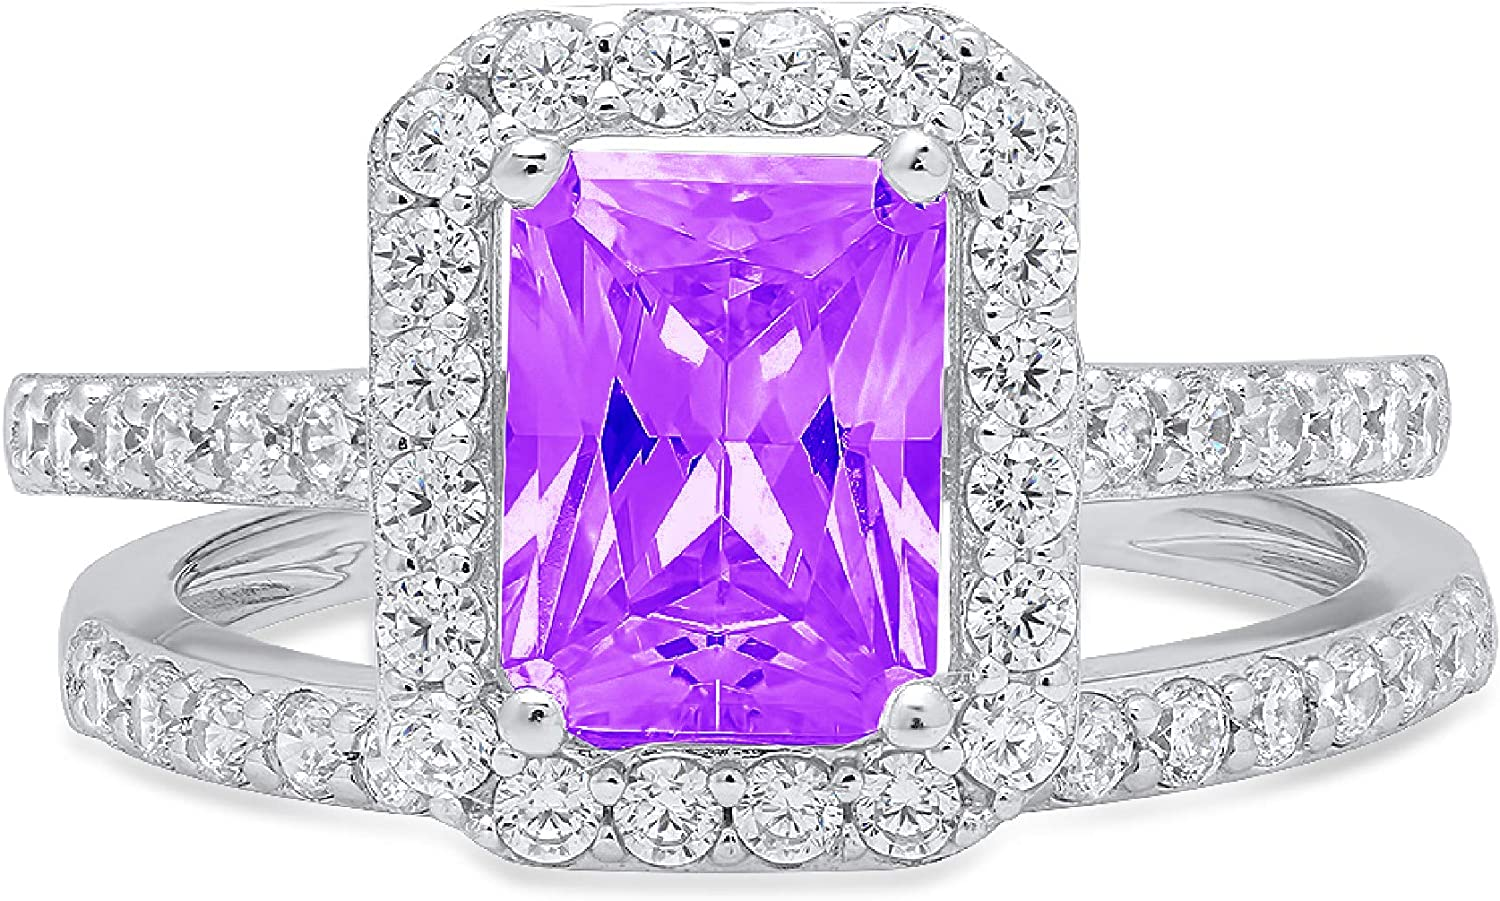 2.20ct Emerald Round Cut Pave Halo Solitaire Accent Natural Purple Amethyst Engagement Promise Statement Anniversary Bridal Wedding Ring Band set Real Solid 14k White Gold